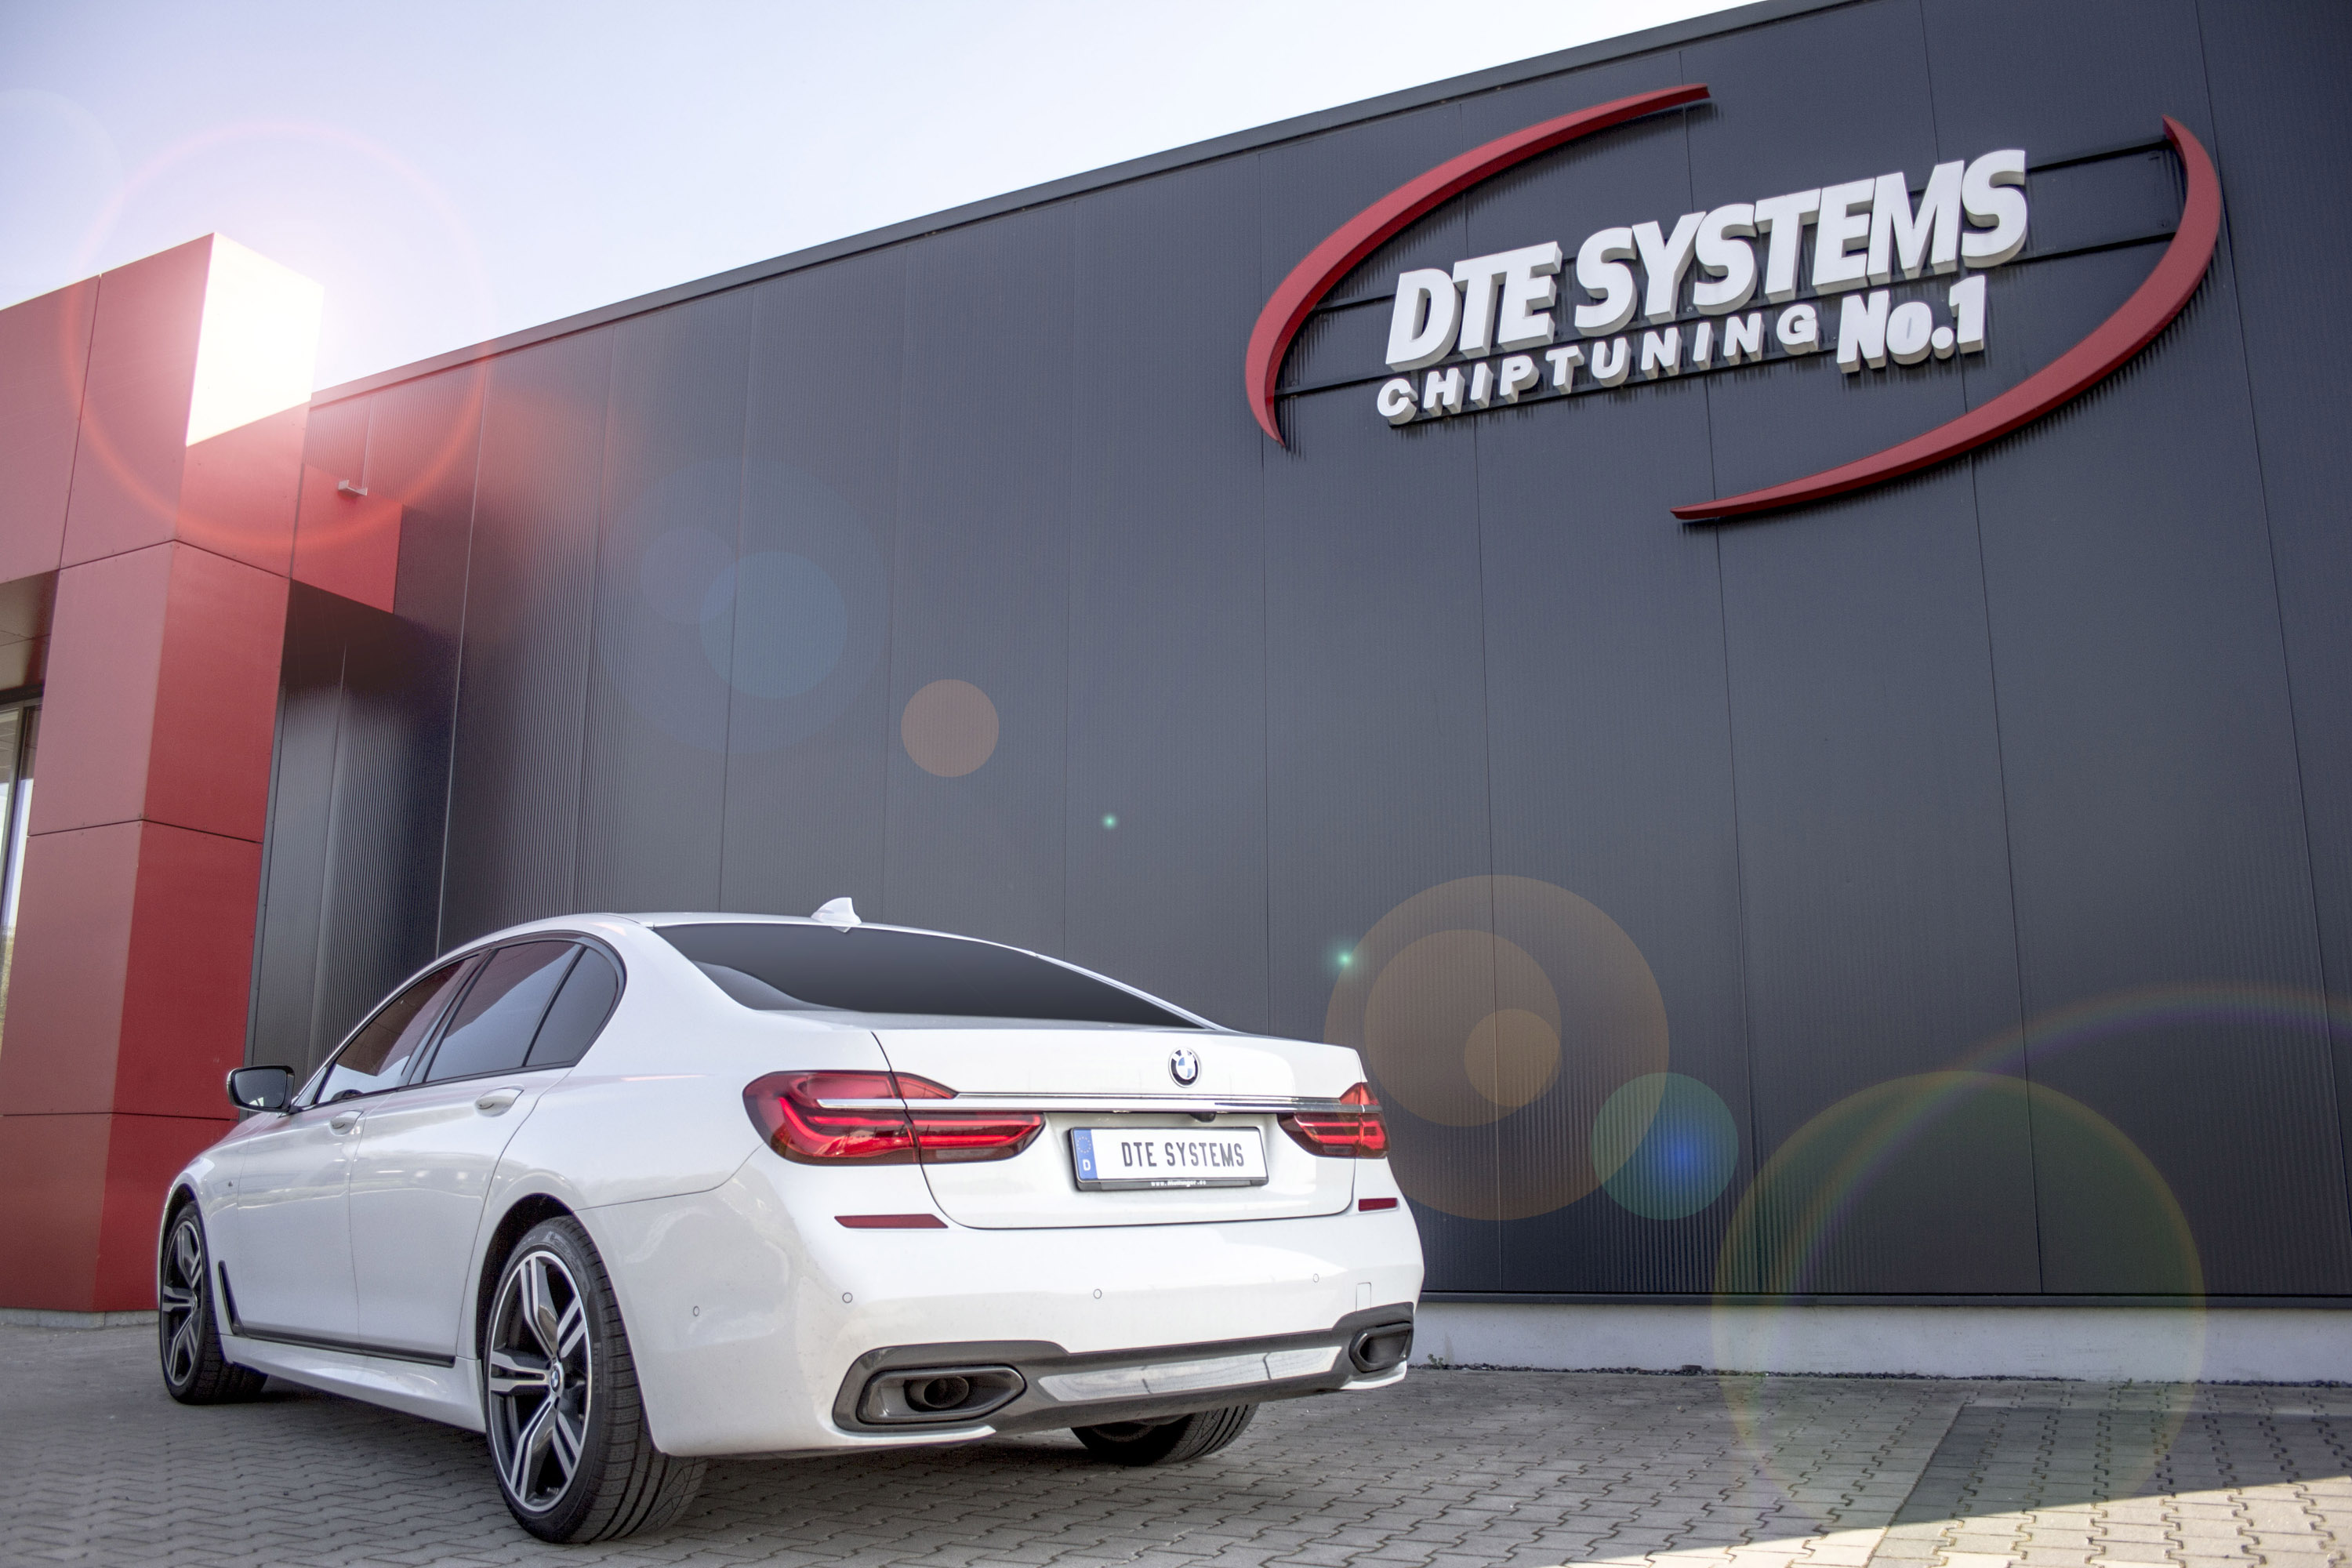 2017 Dte Systems Bmw 750d Xdrive Picture 135105